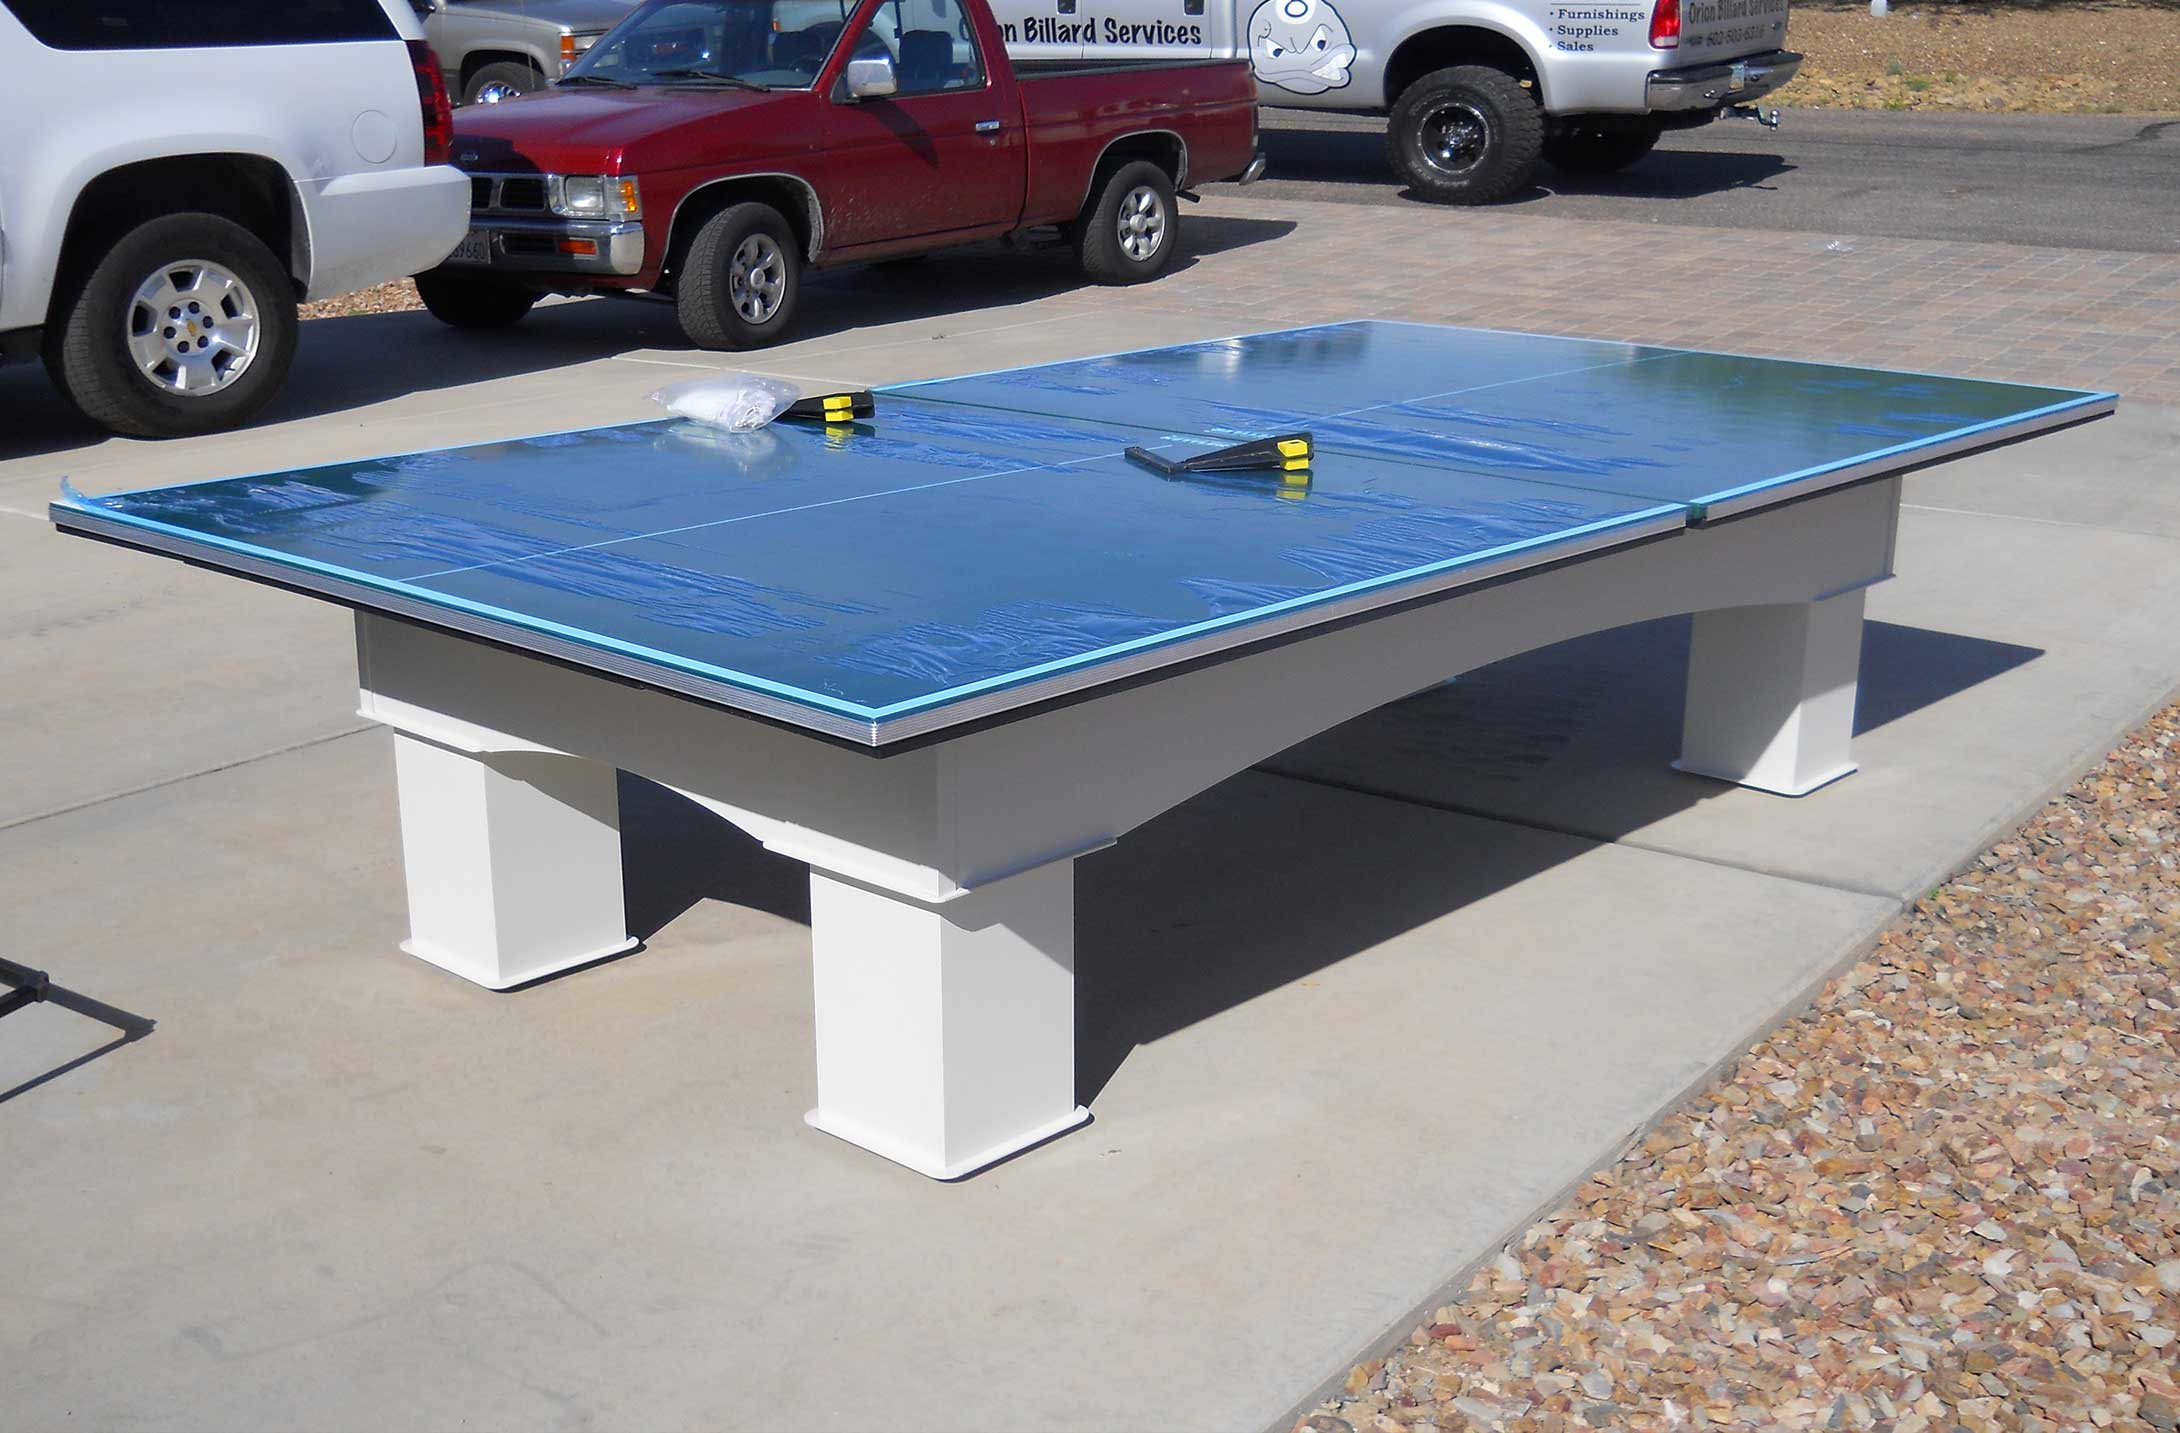 Outdoor table tennis game table waiting to be installed in client's home